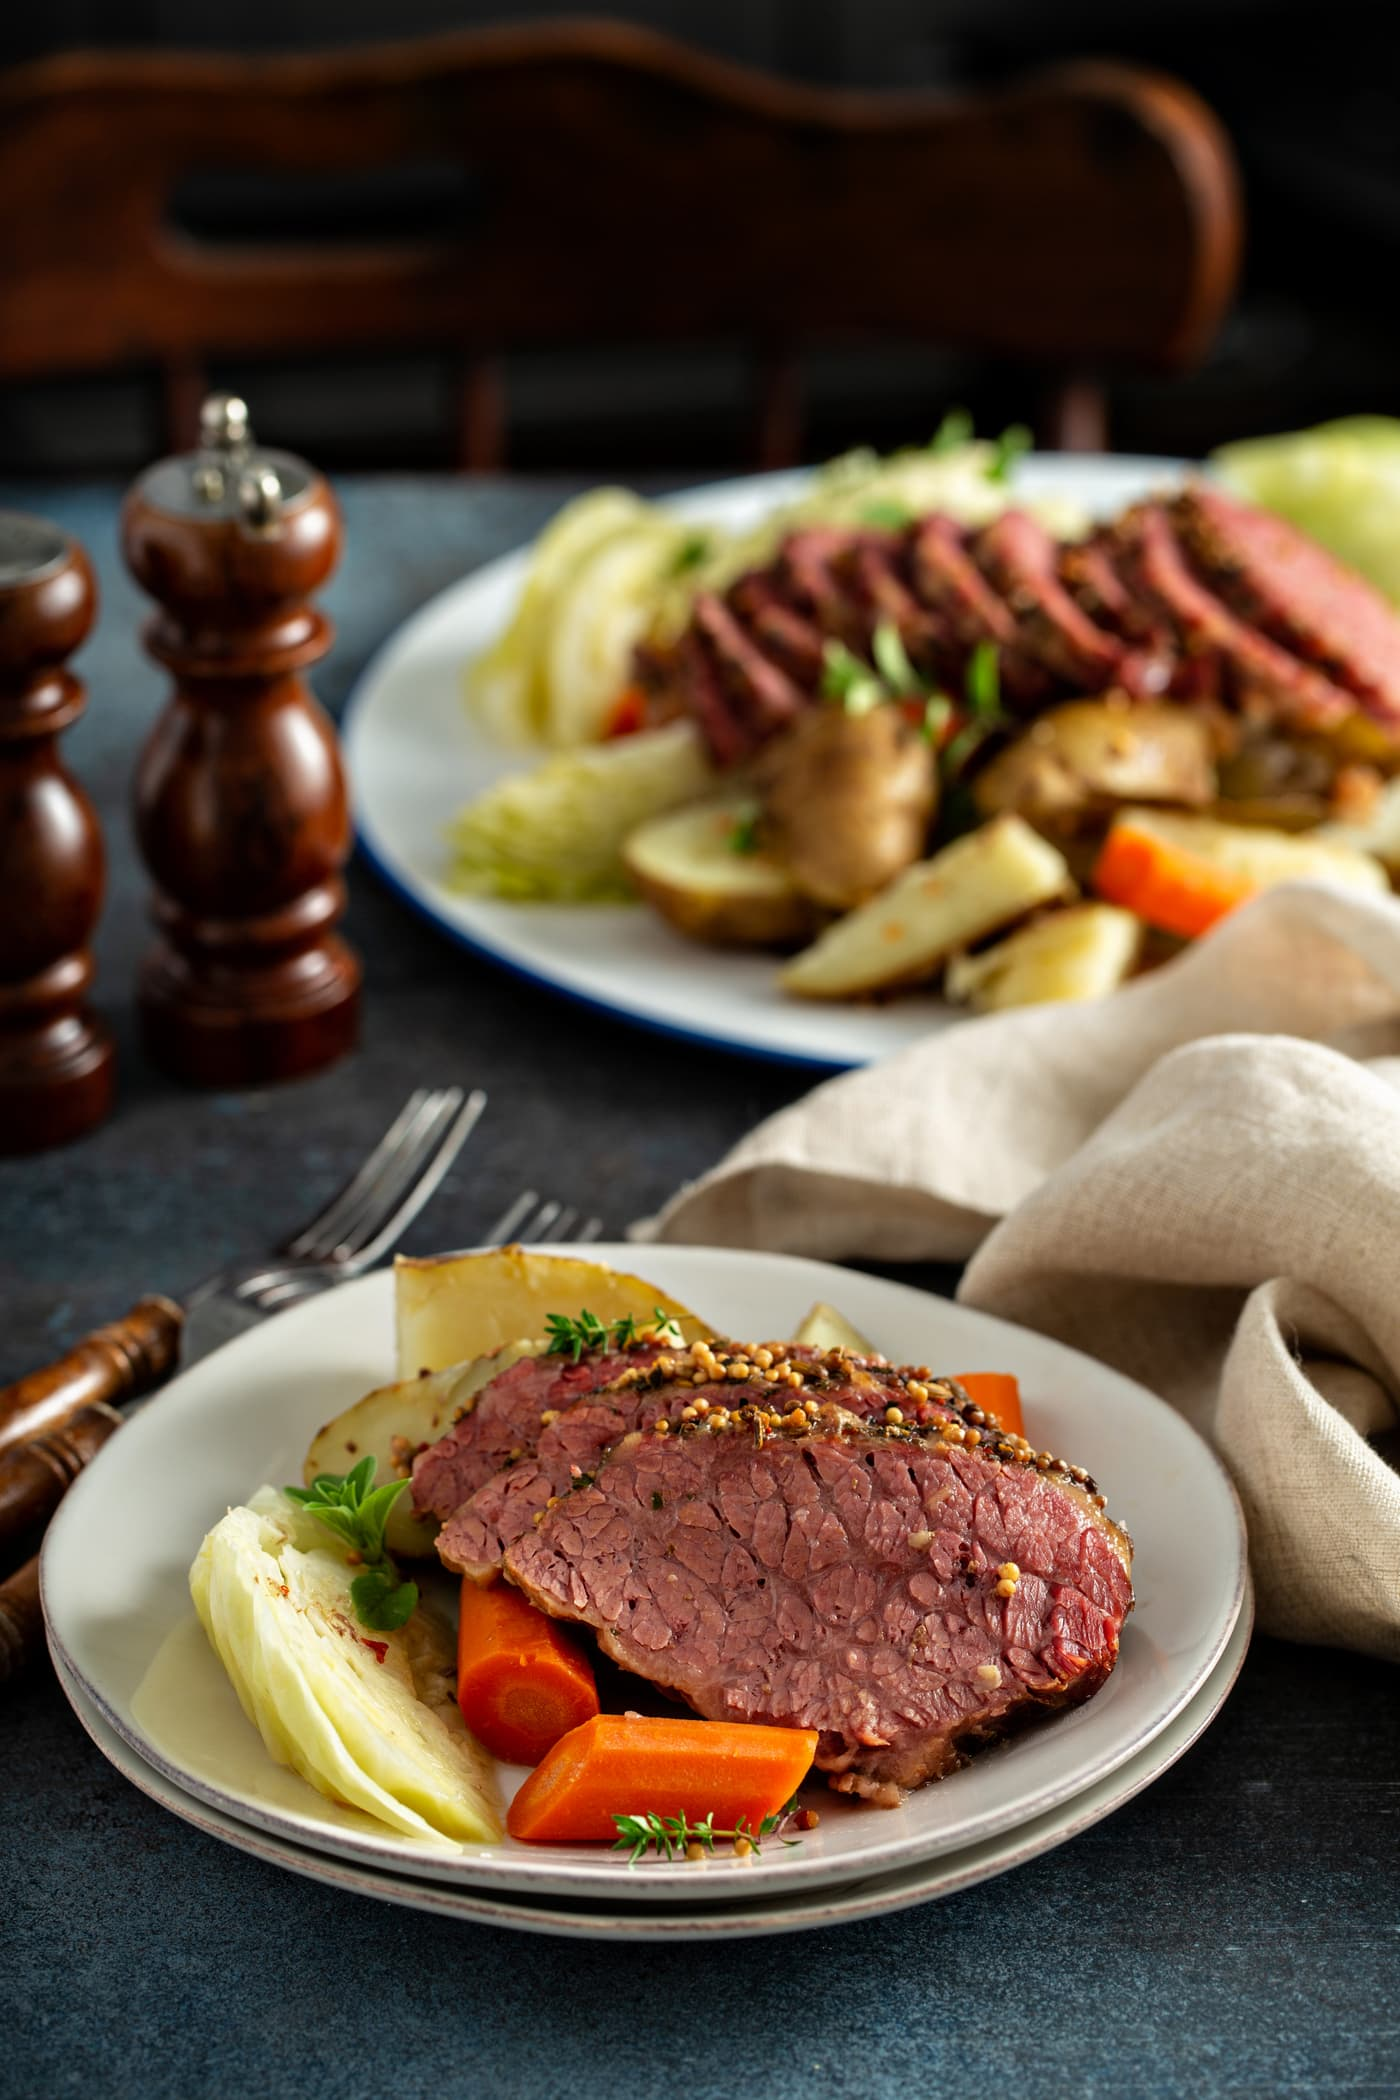 A dinner table with a platter of sliced corned beef and cabbage surrounded by potatoes, carrots, and cabbage. There is a dinner plate with three slices of corned beef and carrots, potatoes and cabbage. There are two forks on the table next to the plate and a wooden salt and pepper shaker in the background. There is also a tan linen napkin bunched up by the plate.